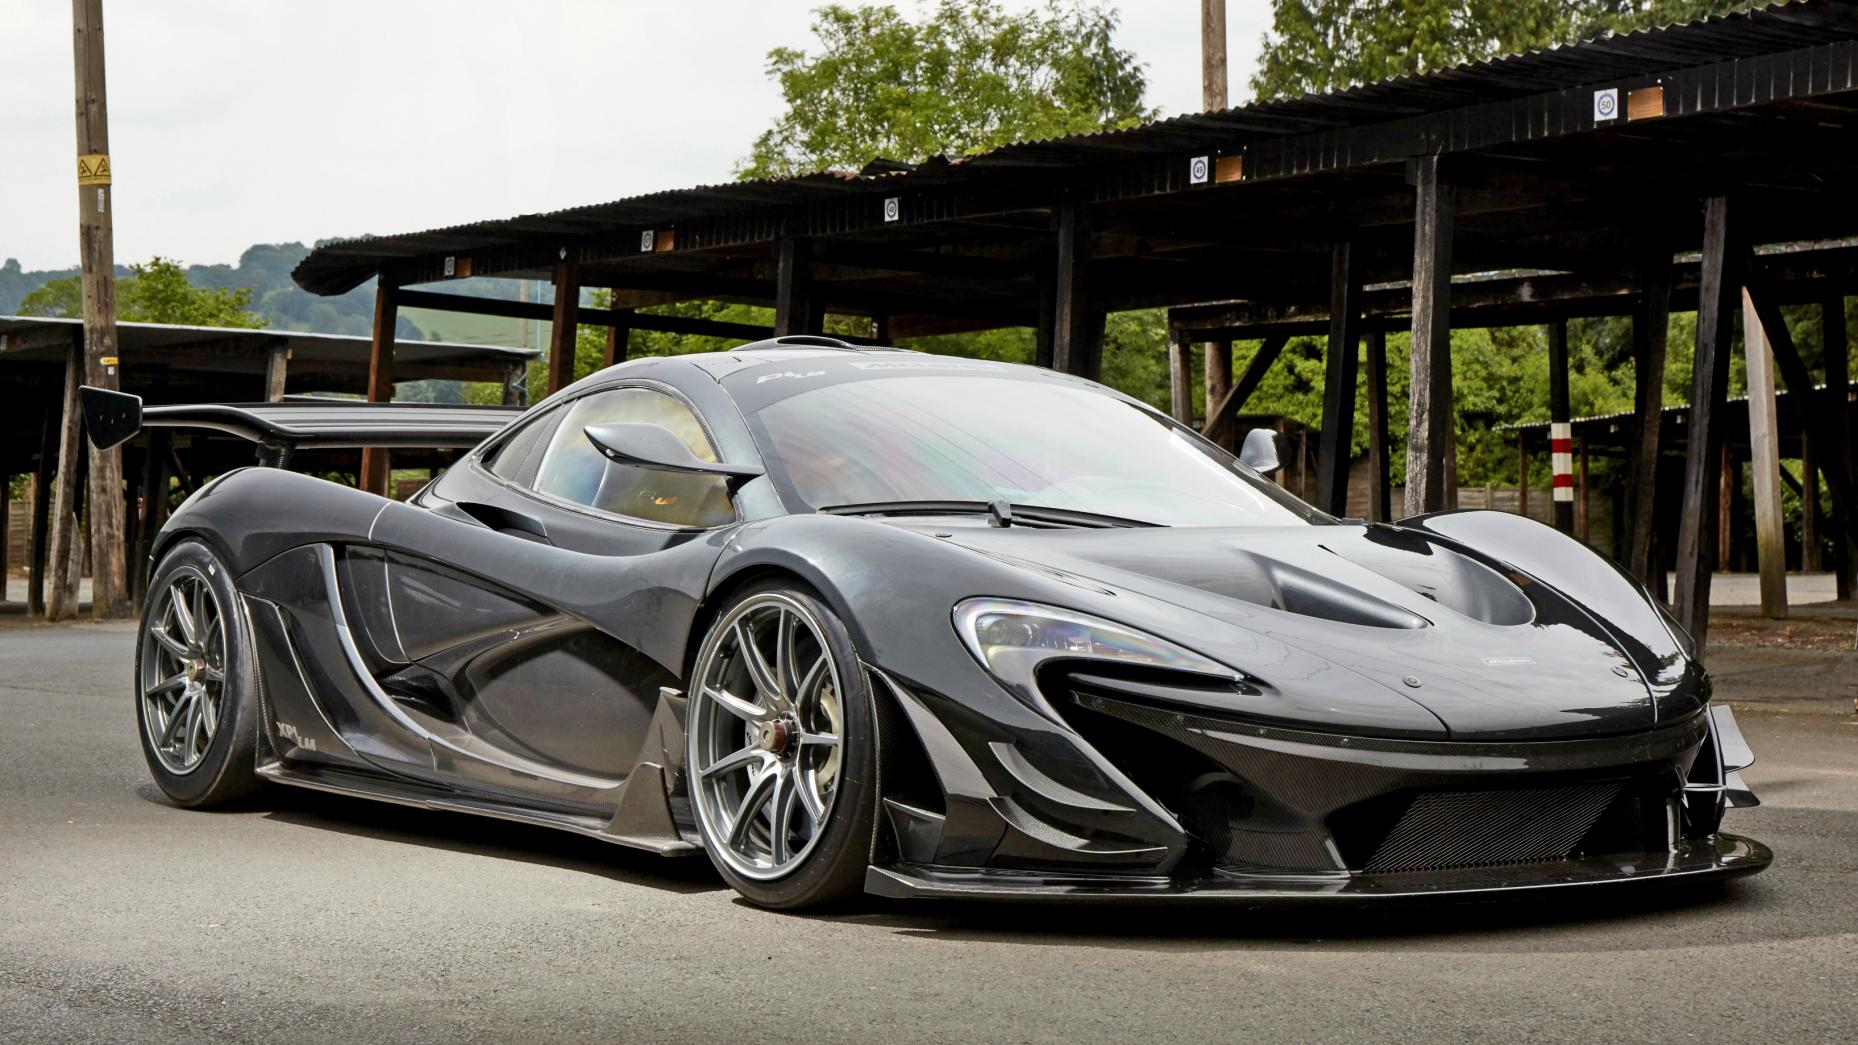 Extreme McLaren P1 LM Revealed Ahead of Goodwood 2016